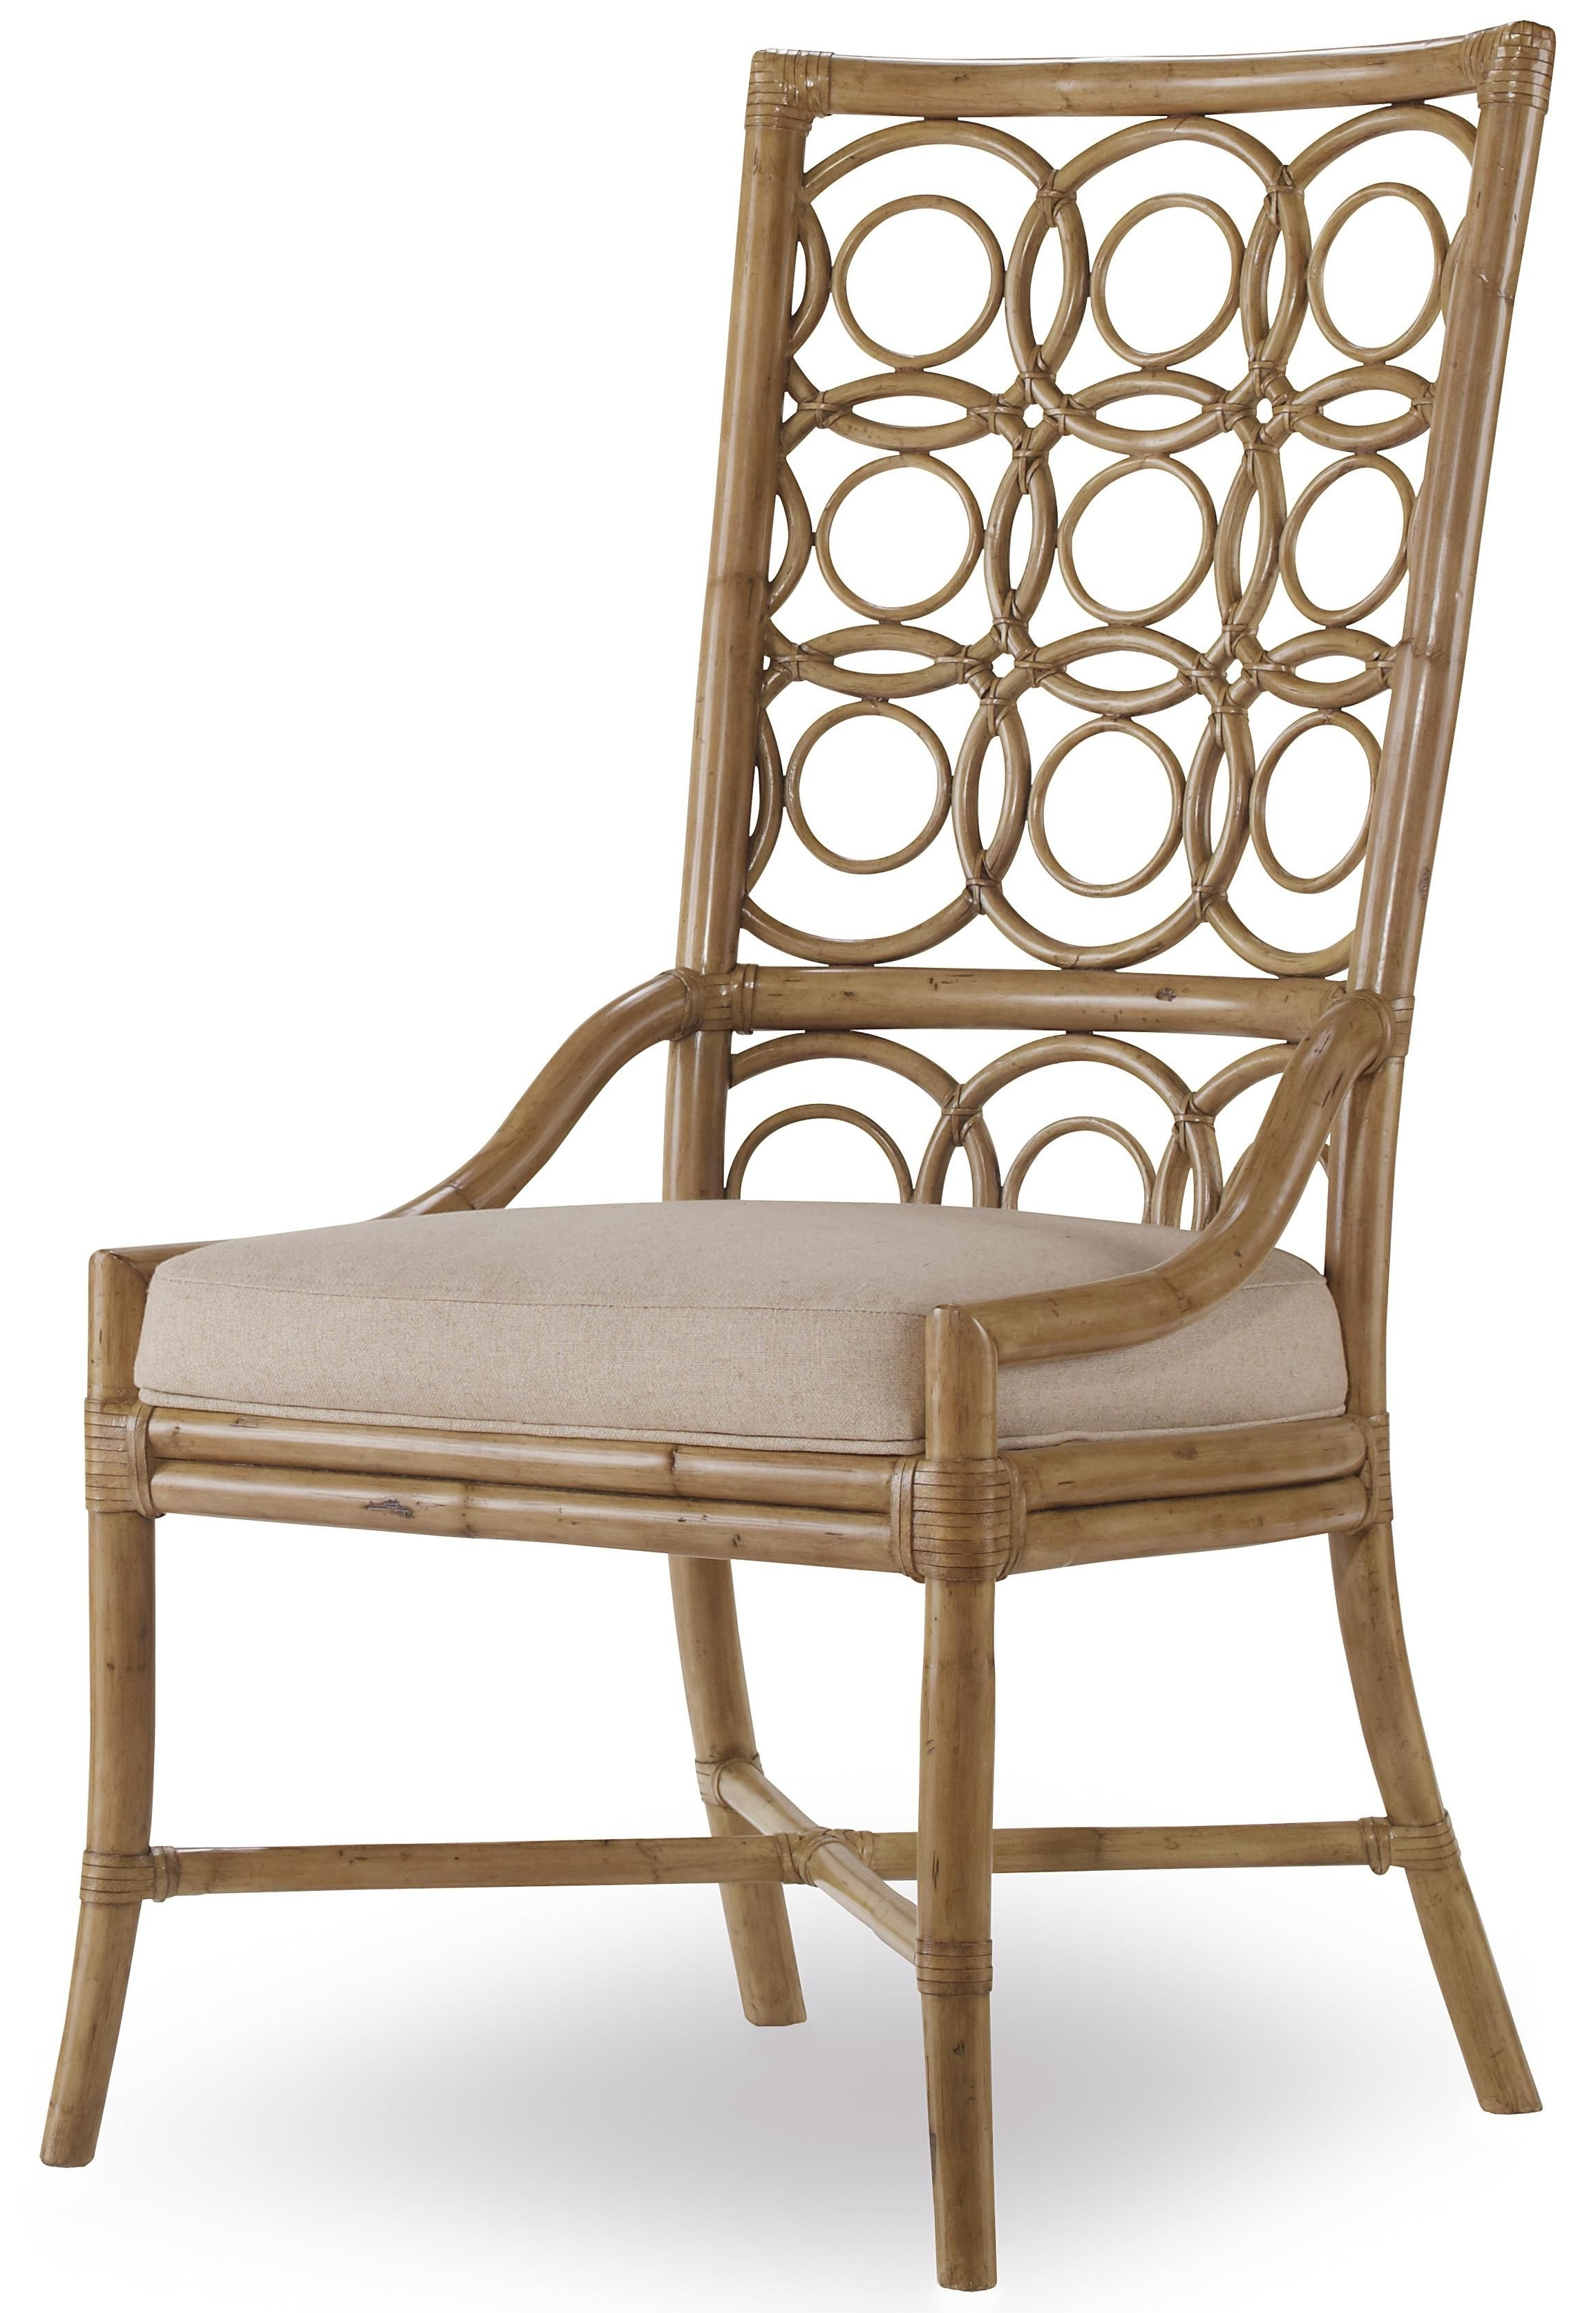 Most Recent Magnolia Home Entwine Rattan Side Chairs In Sanctuary Rattan Side Chairhooker Furniture Available At Stc (View 5 of 20)